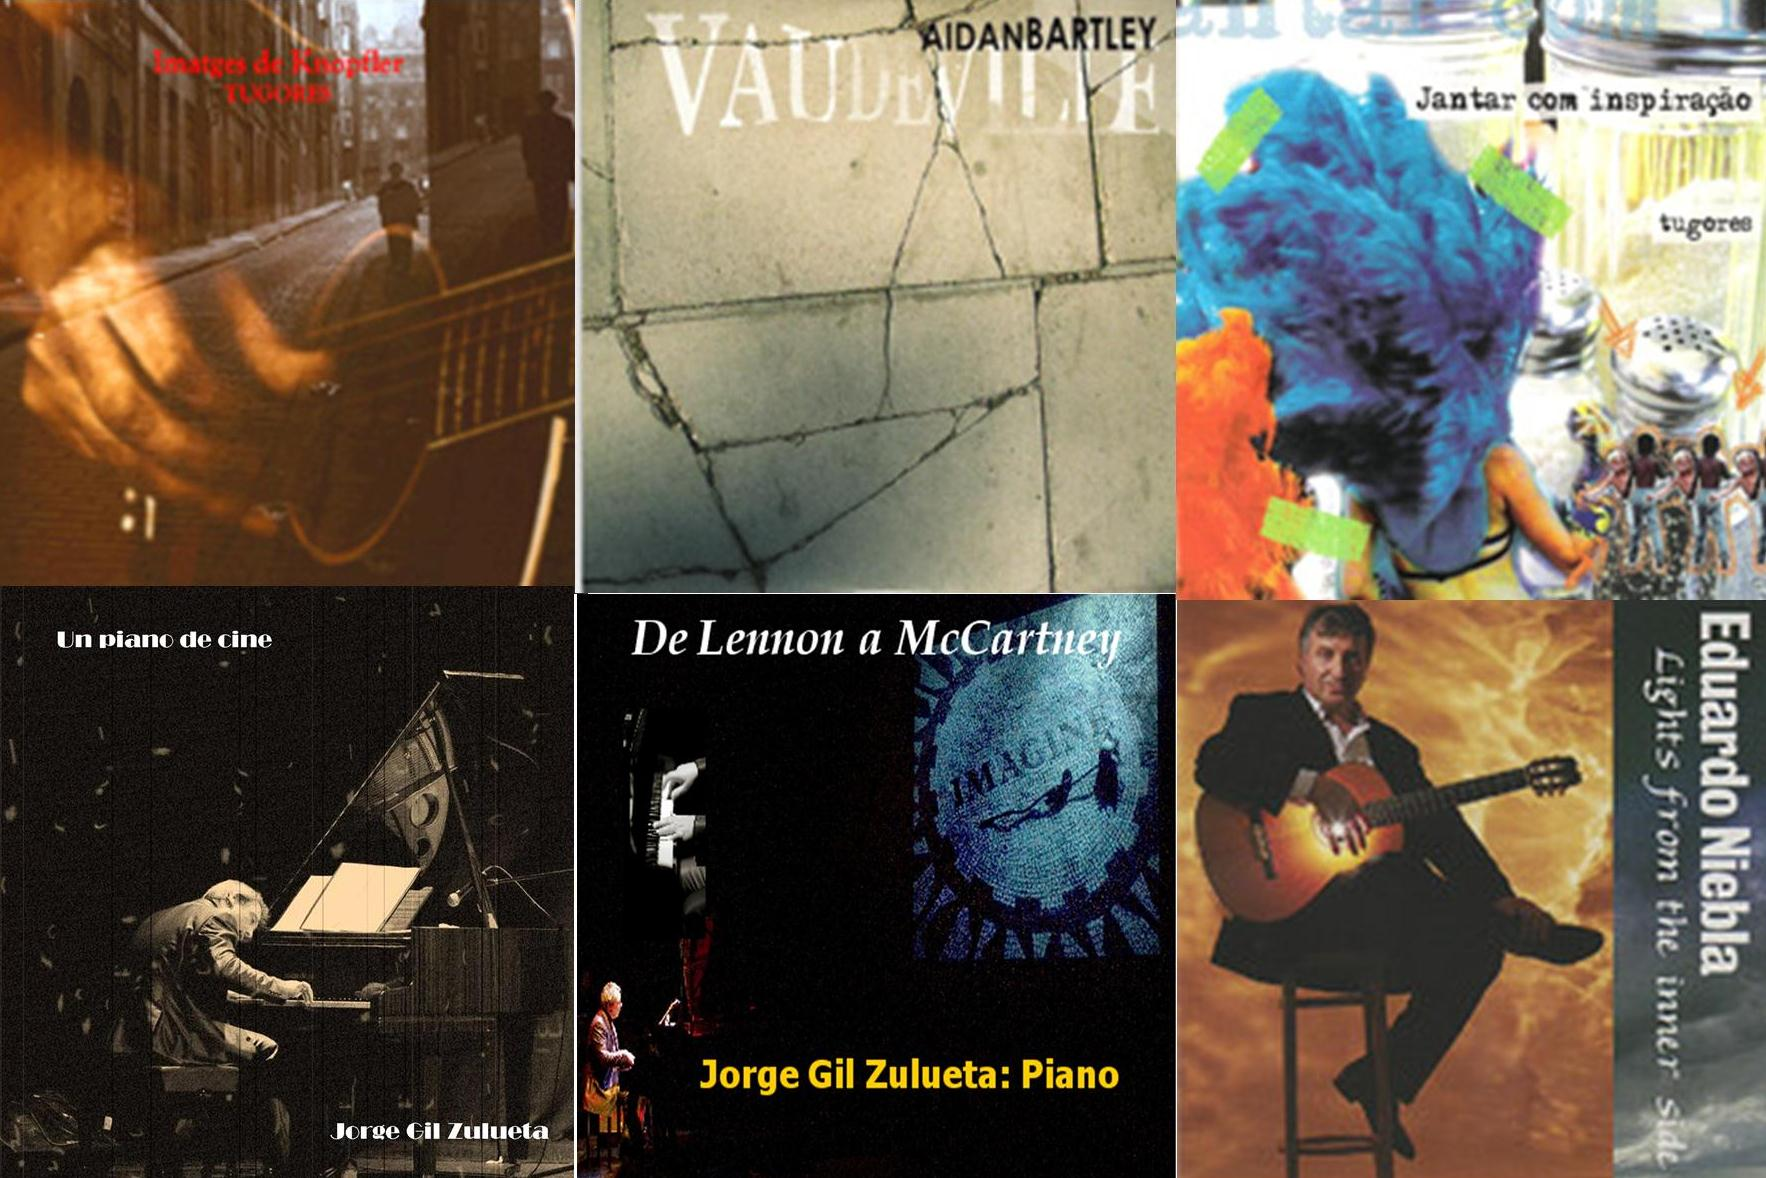 Catalogo Cds Musikarte